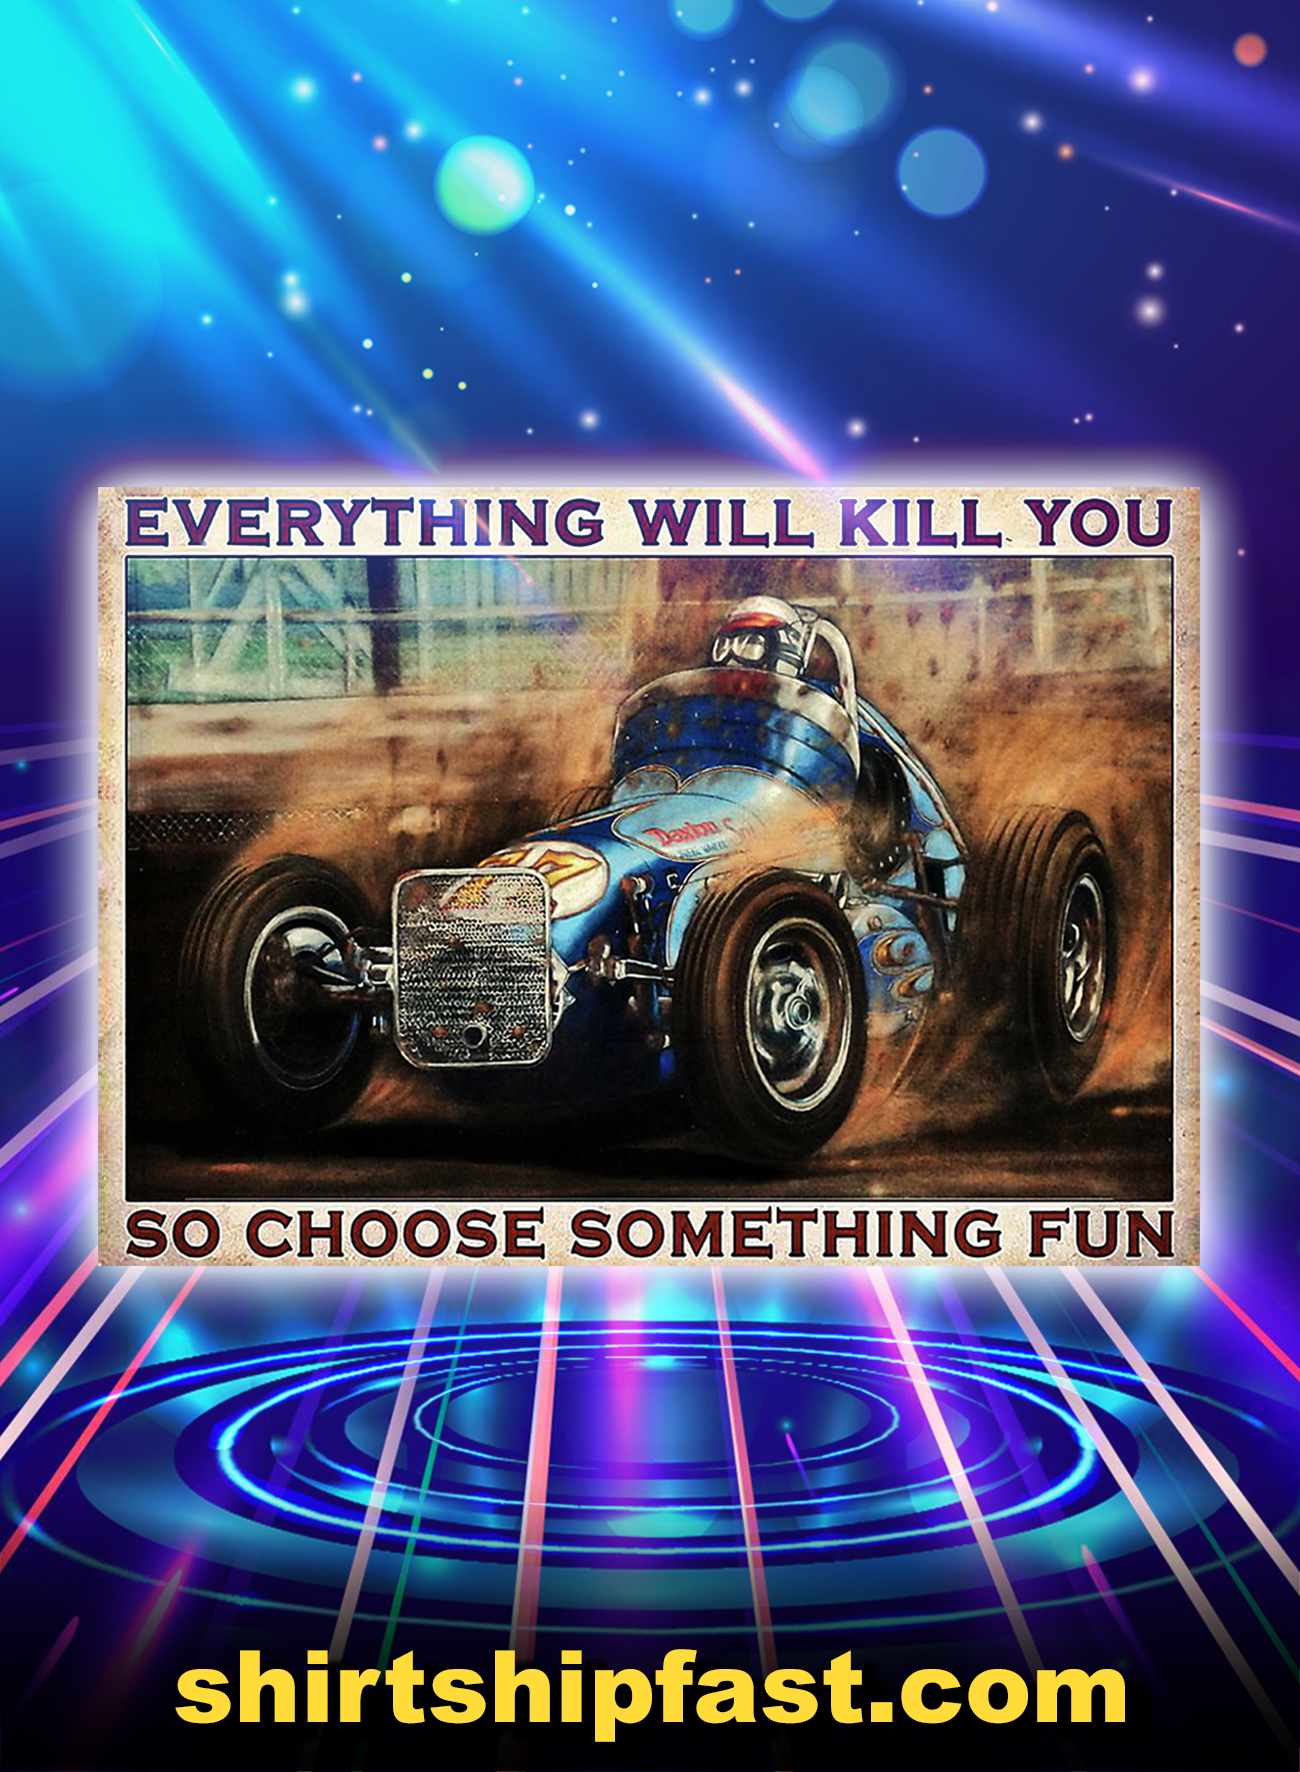 Dirt track everything will kill you so choose something fun poster - A1